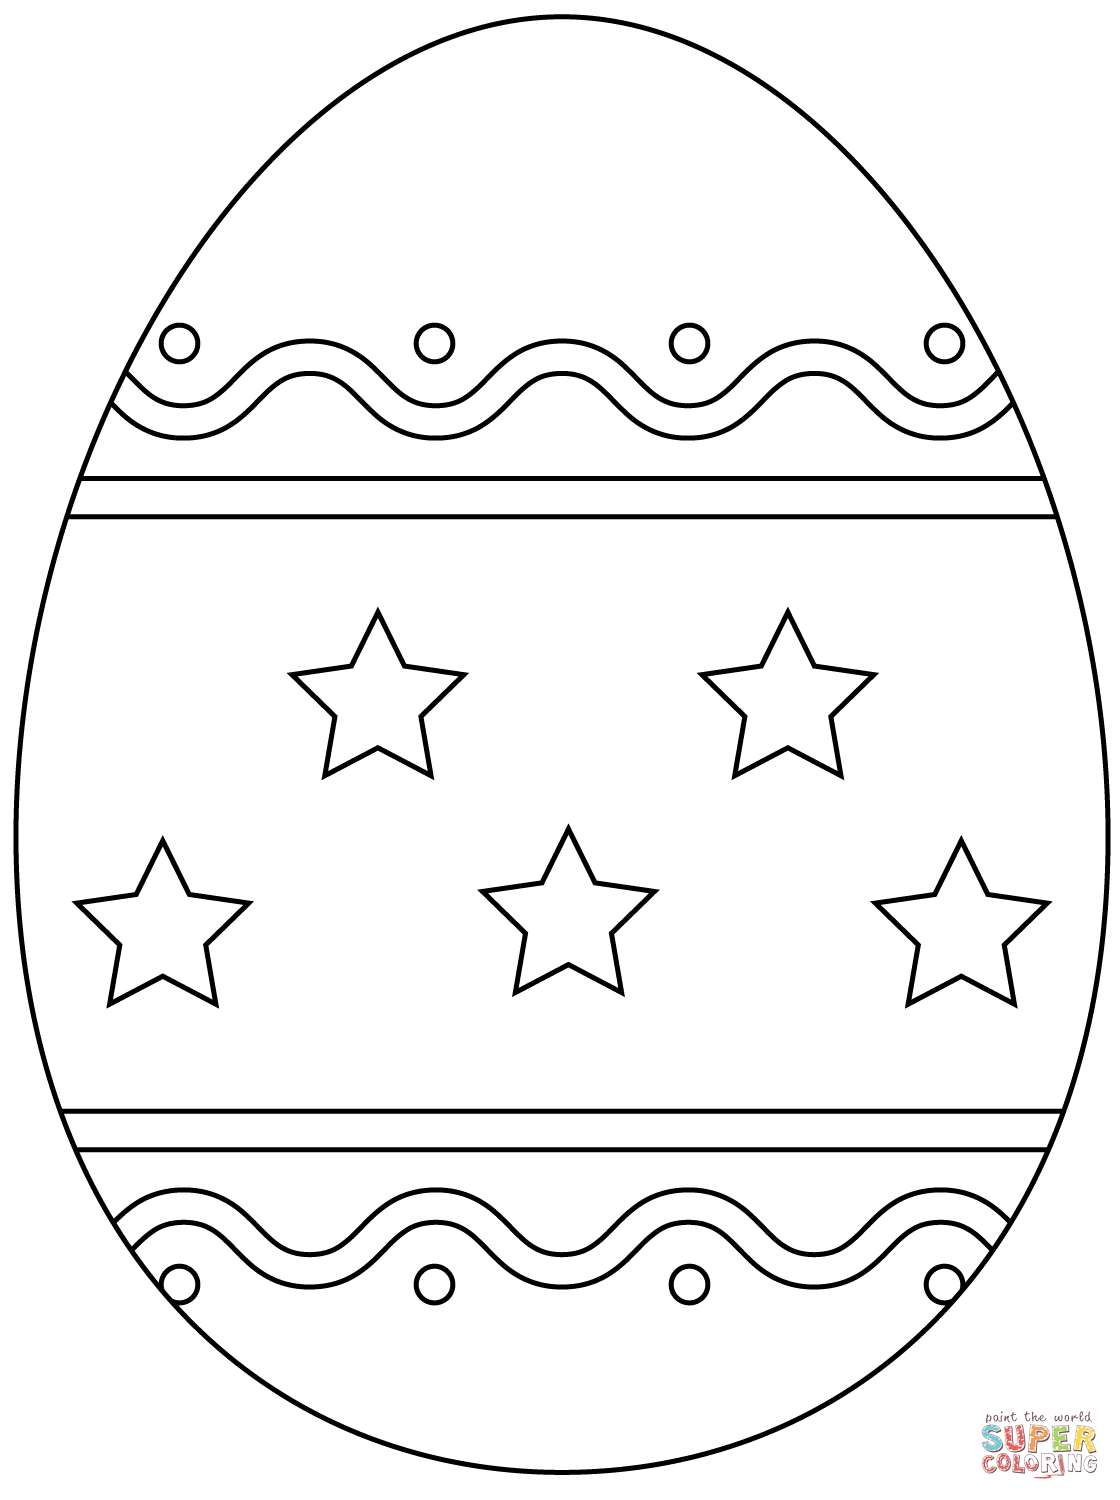 Easter Egg With Simple Pattern Coloring Page